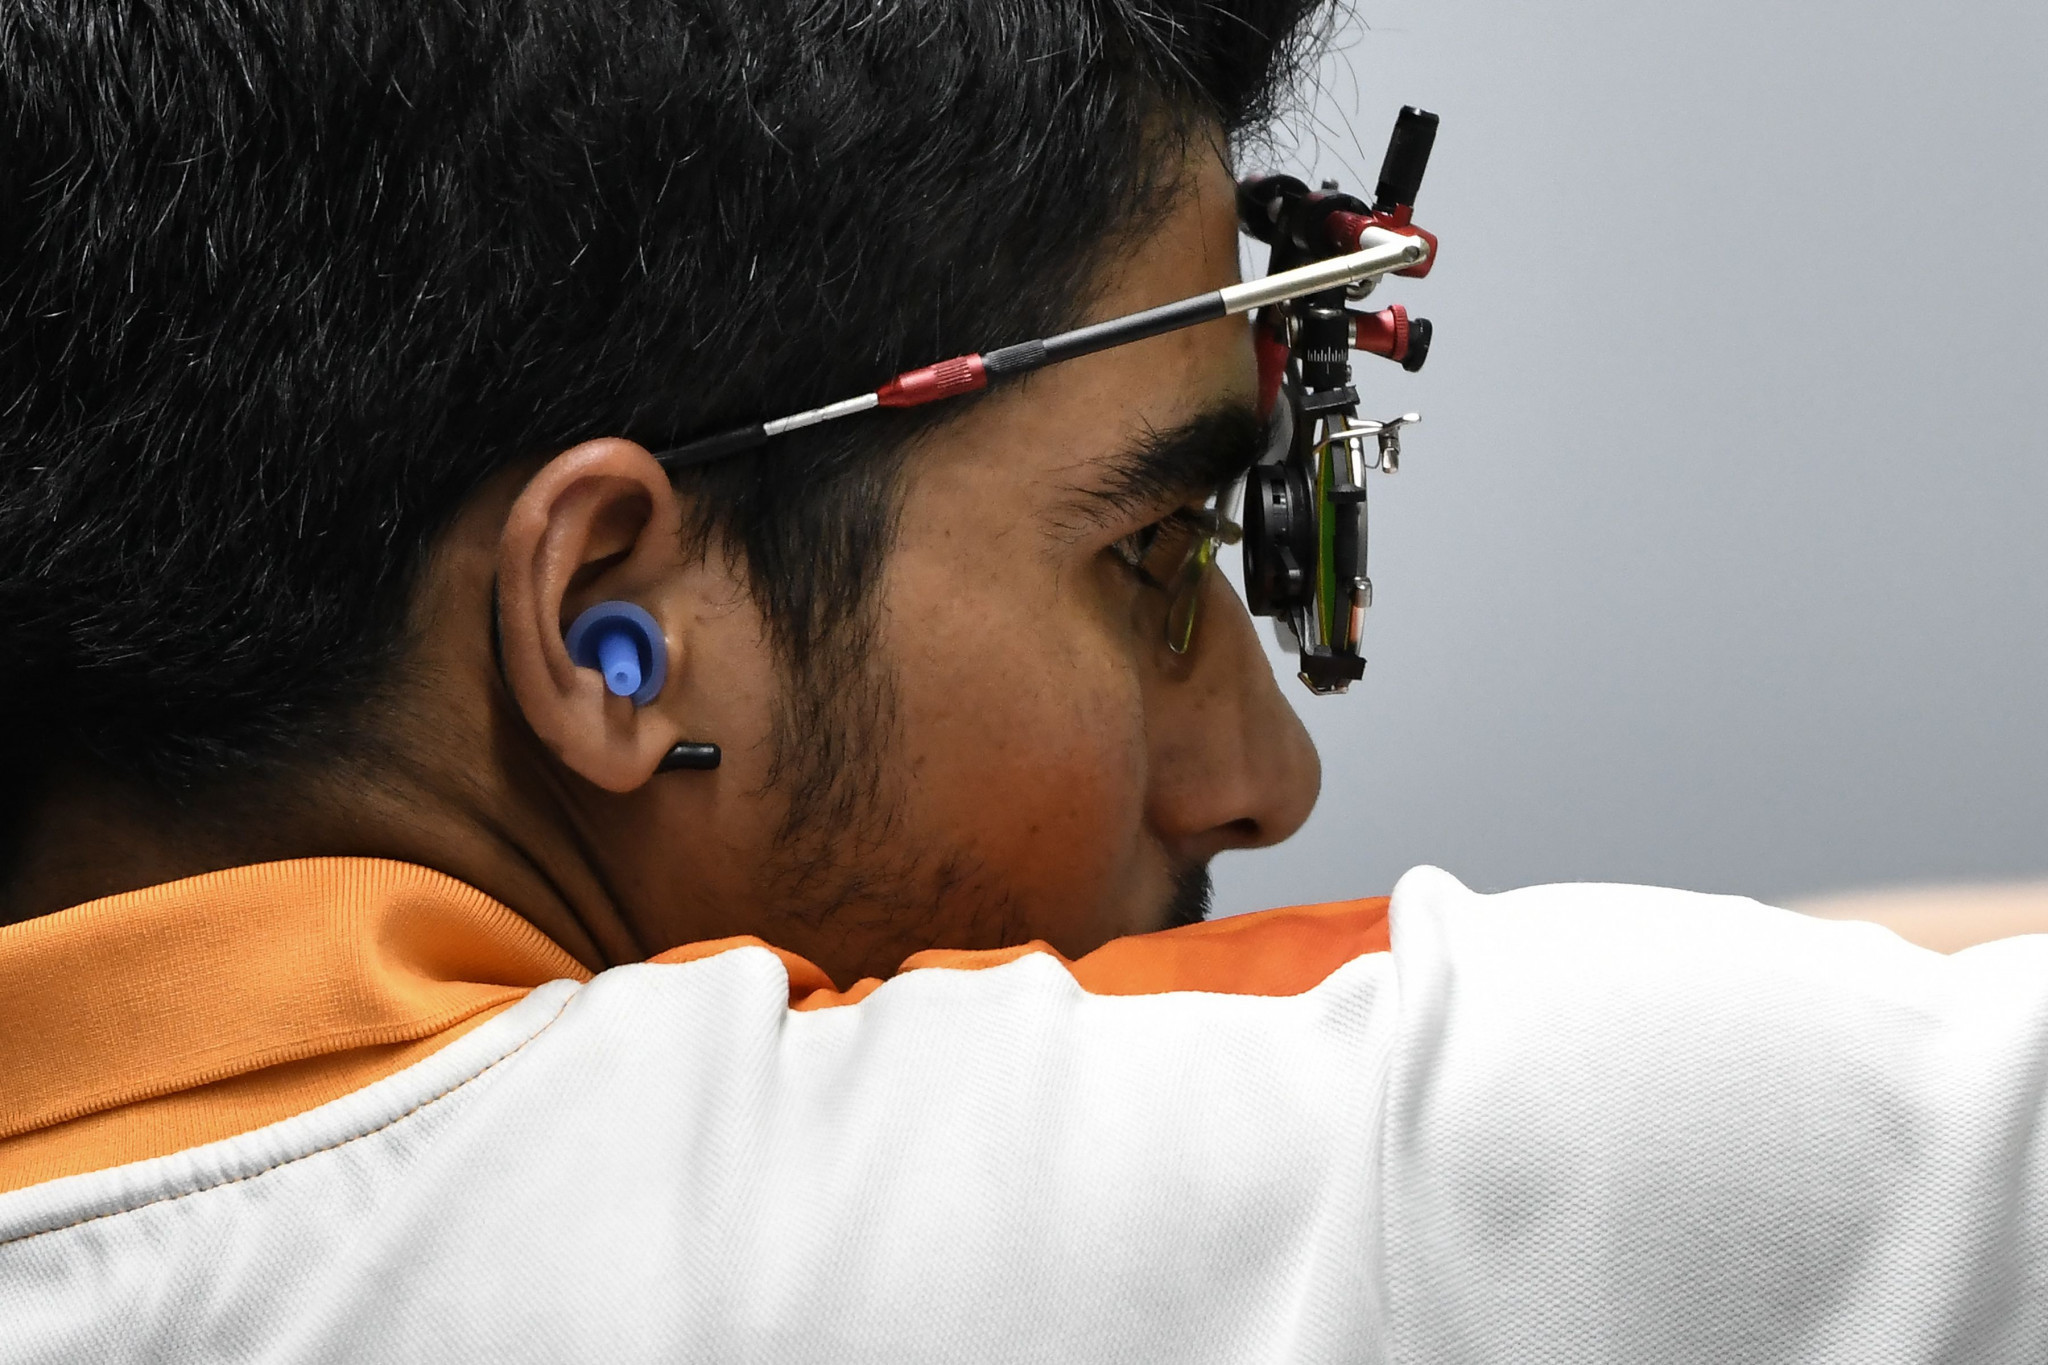 Chaudhary breaks world record at ISSF Rifle and Pistol World Cup